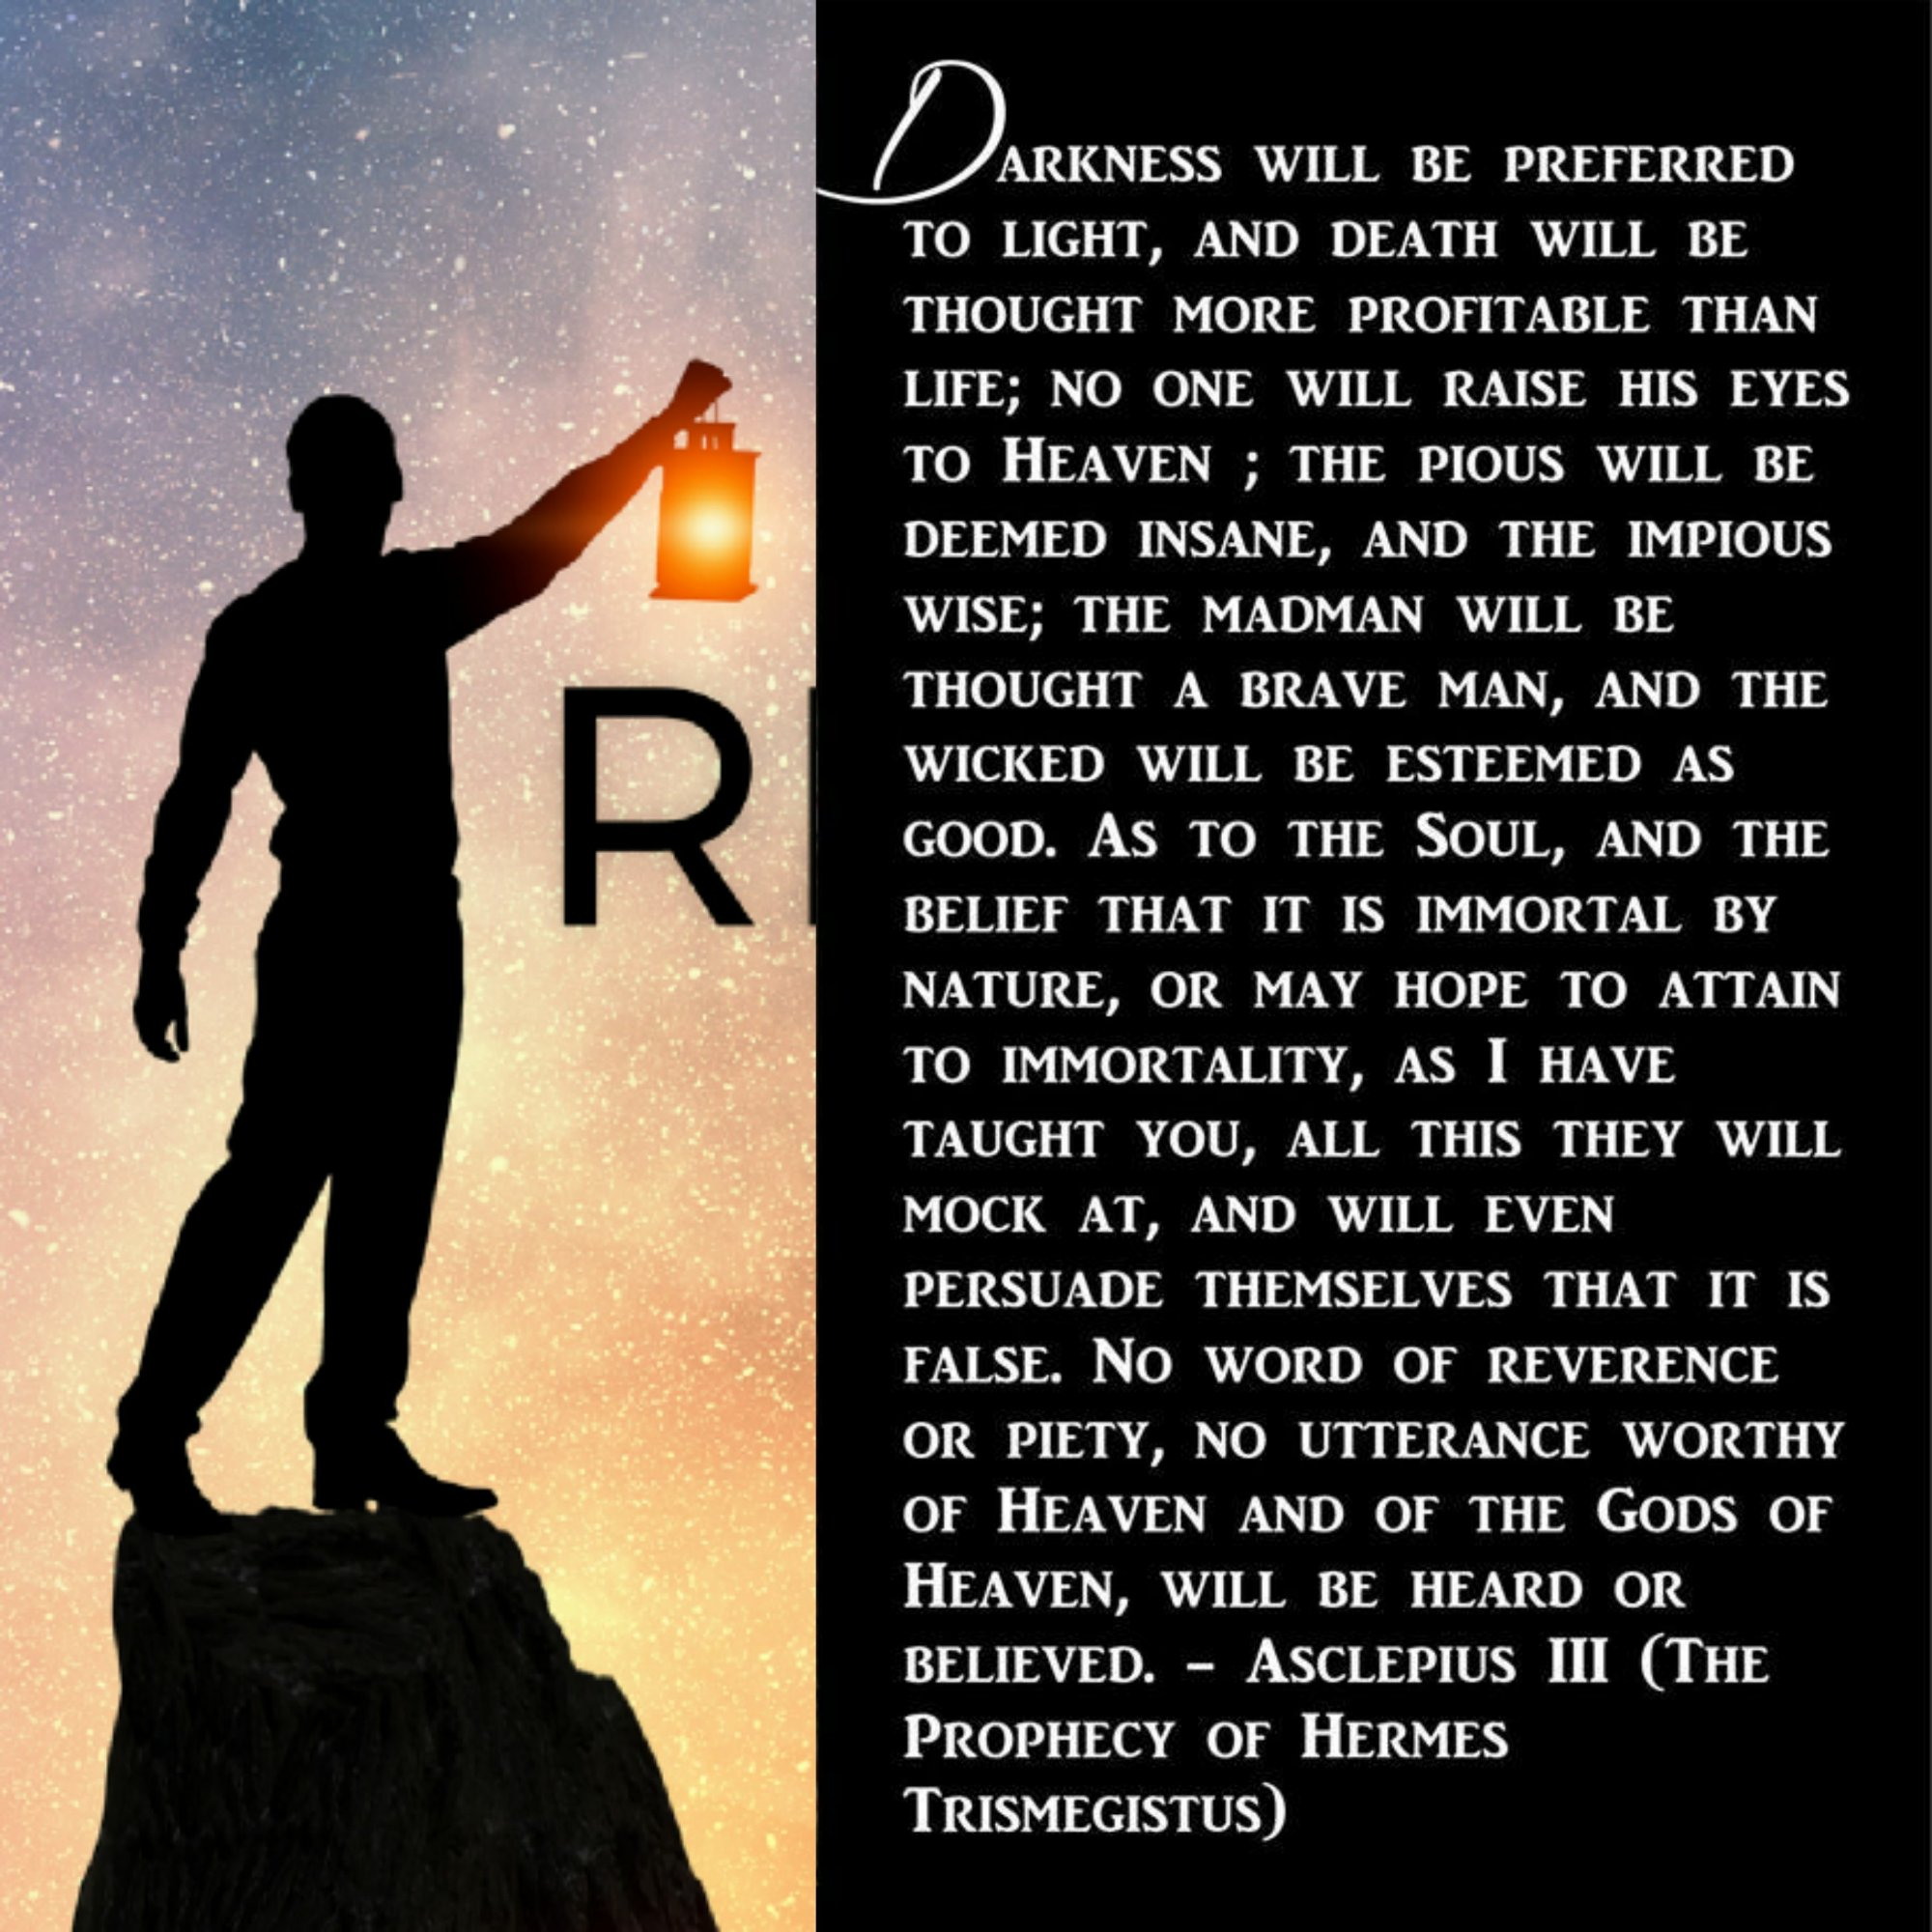 Prophecy of Hermes - mankind will descend into darkness + Abandon Ancient Spiritual Teachings for New Age Deceptions False